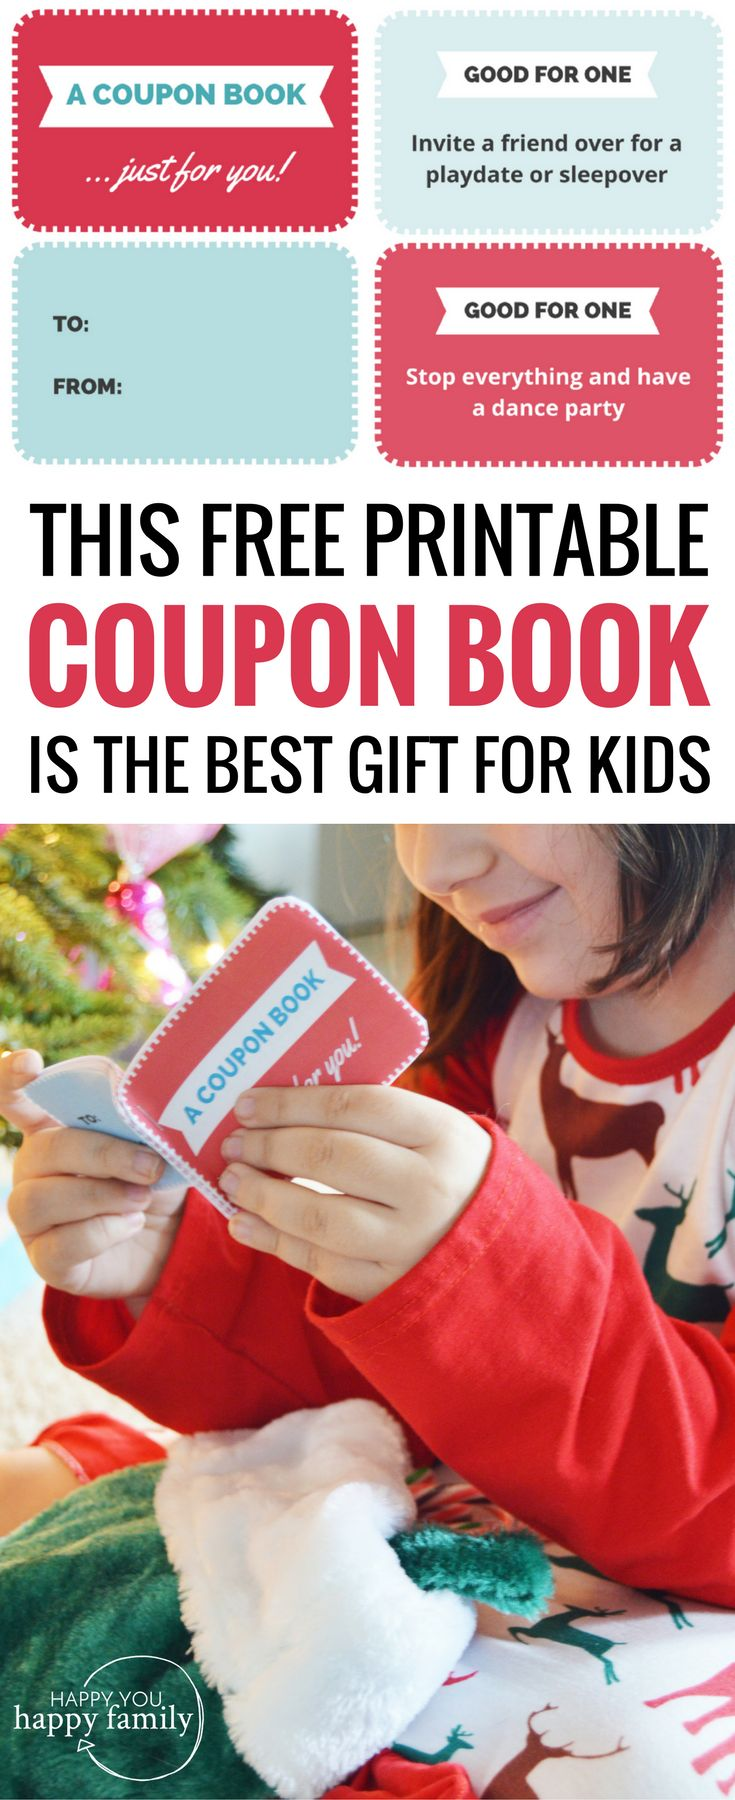 Forget the typical stocking stuffers for kids! This free printable coupon book for kids will be your child's favorite gift of all. Also includes a blank sheet template you can use to fill in your own ideas of fun experiences. When it comes to Christmas gifts for kids, it doesn't get any better than this meaningful present. #christmasgiftsforkids #nontoygifts #giftideasforkids #giftsforkids